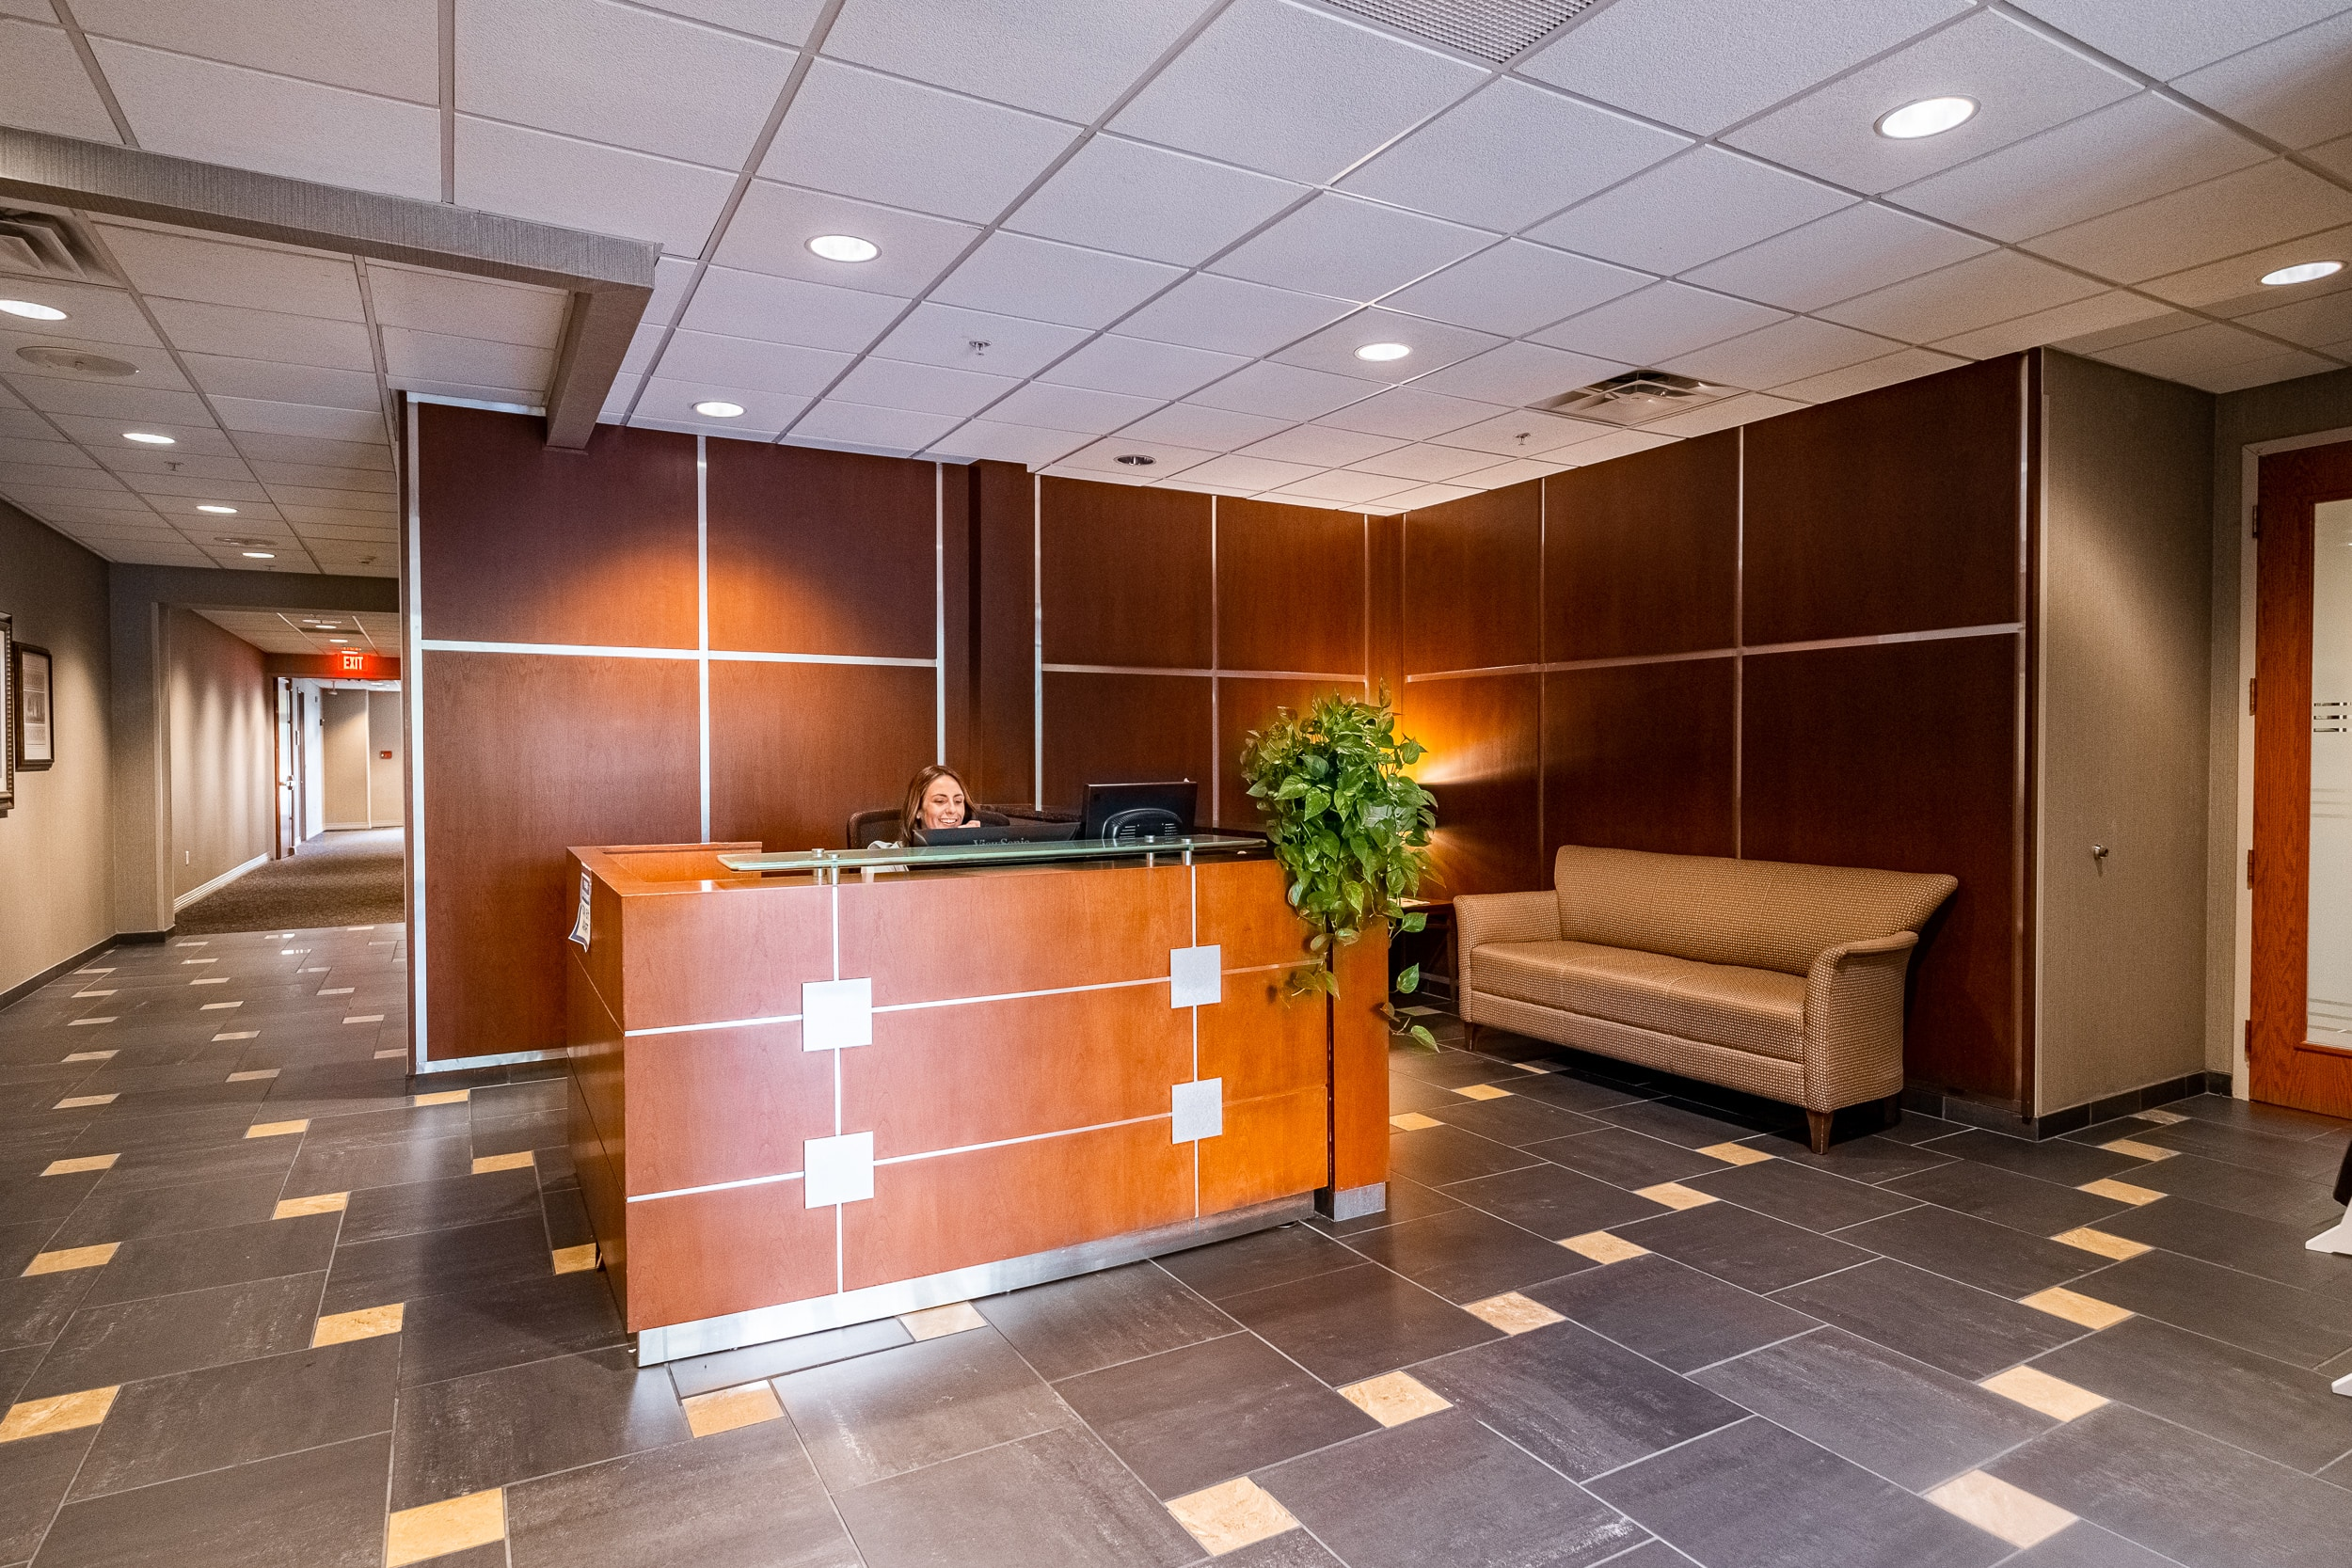 OSS Headquarters Lobby. Open and well-lit lobby, with stone floor and modern decor.